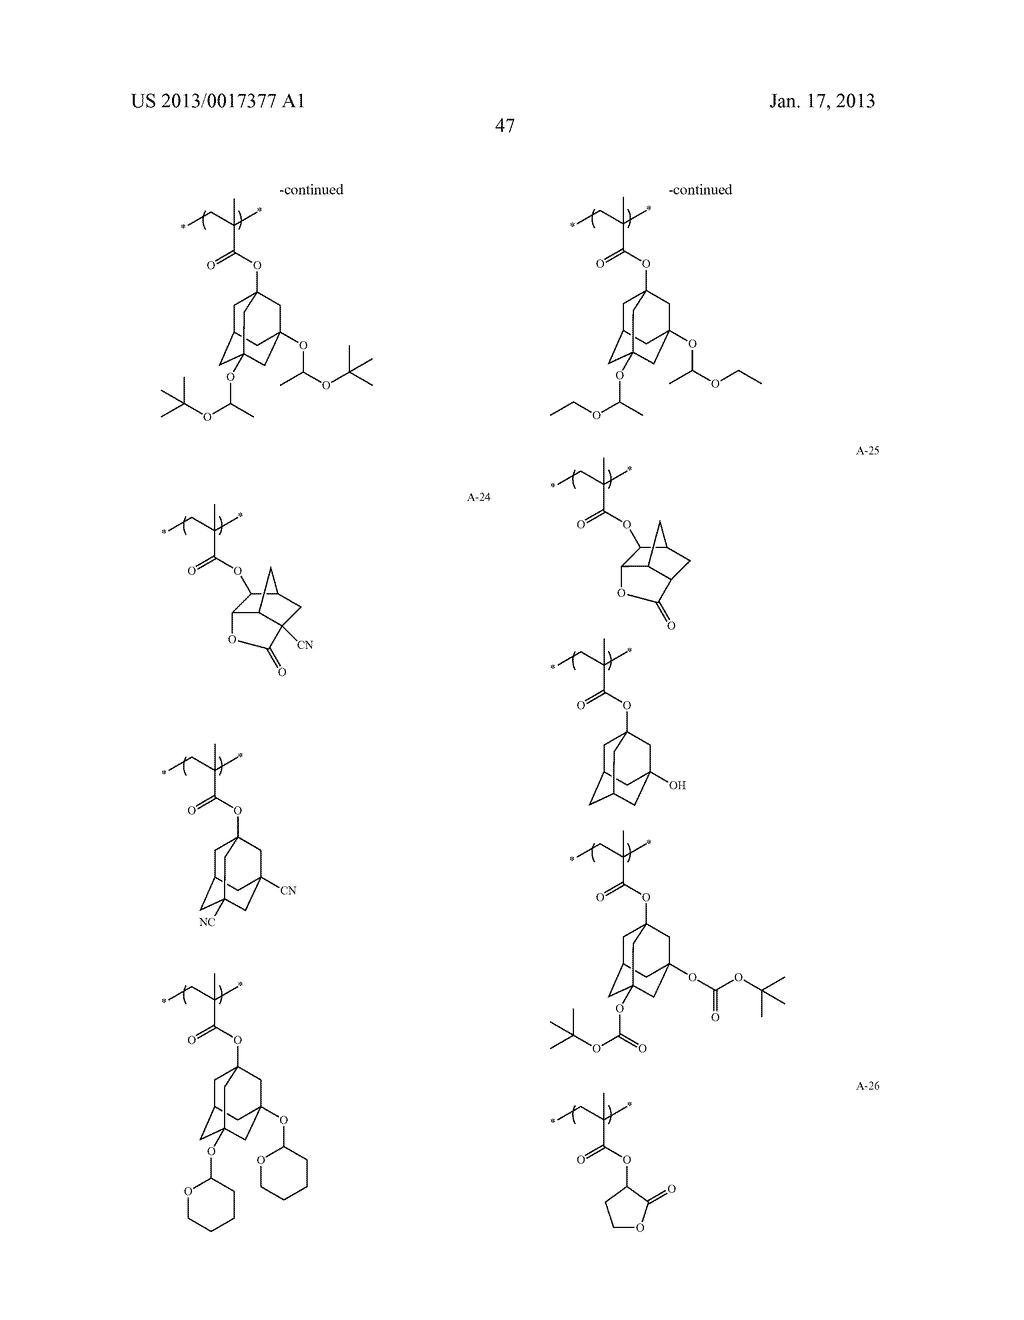 ACTINIC-RAY- OR RADIATION-SENSITIVE RESIN COMPOSITION AND METHOD OF     FORMING PATTERN USING THE SAMEAANM Kataoka; ShoheiAACI ShizuokaAACO JPAAGP Kataoka; Shohei Shizuoka JPAANM Iwato; KaoruAACI ShizuokaAACO JPAAGP Iwato; Kaoru Shizuoka JPAANM Kamimura; SouAACI ShizuokaAACO JPAAGP Kamimura; Sou Shizuoka JPAANM Tsuchihashi; ToruAACI ShizuokaAACO JPAAGP Tsuchihashi; Toru Shizuoka JPAANM Enomoto; YuichiroAACI ShizuokaAACO JPAAGP Enomoto; Yuichiro Shizuoka JPAANM Fujii; KanaAACI ShizuokaAACO JPAAGP Fujii; Kana Shizuoka JPAANM Mizutani; KazuyoshiAACI ShizuokaAACO JPAAGP Mizutani; Kazuyoshi Shizuoka JPAANM Tarutani; ShinjiAACI ShizuokaAACO JPAAGP Tarutani; Shinji Shizuoka JPAANM Kato; KeitaAACI ShizuokaAACO JPAAGP Kato; Keita Shizuoka JP - diagram, schematic, and image 48